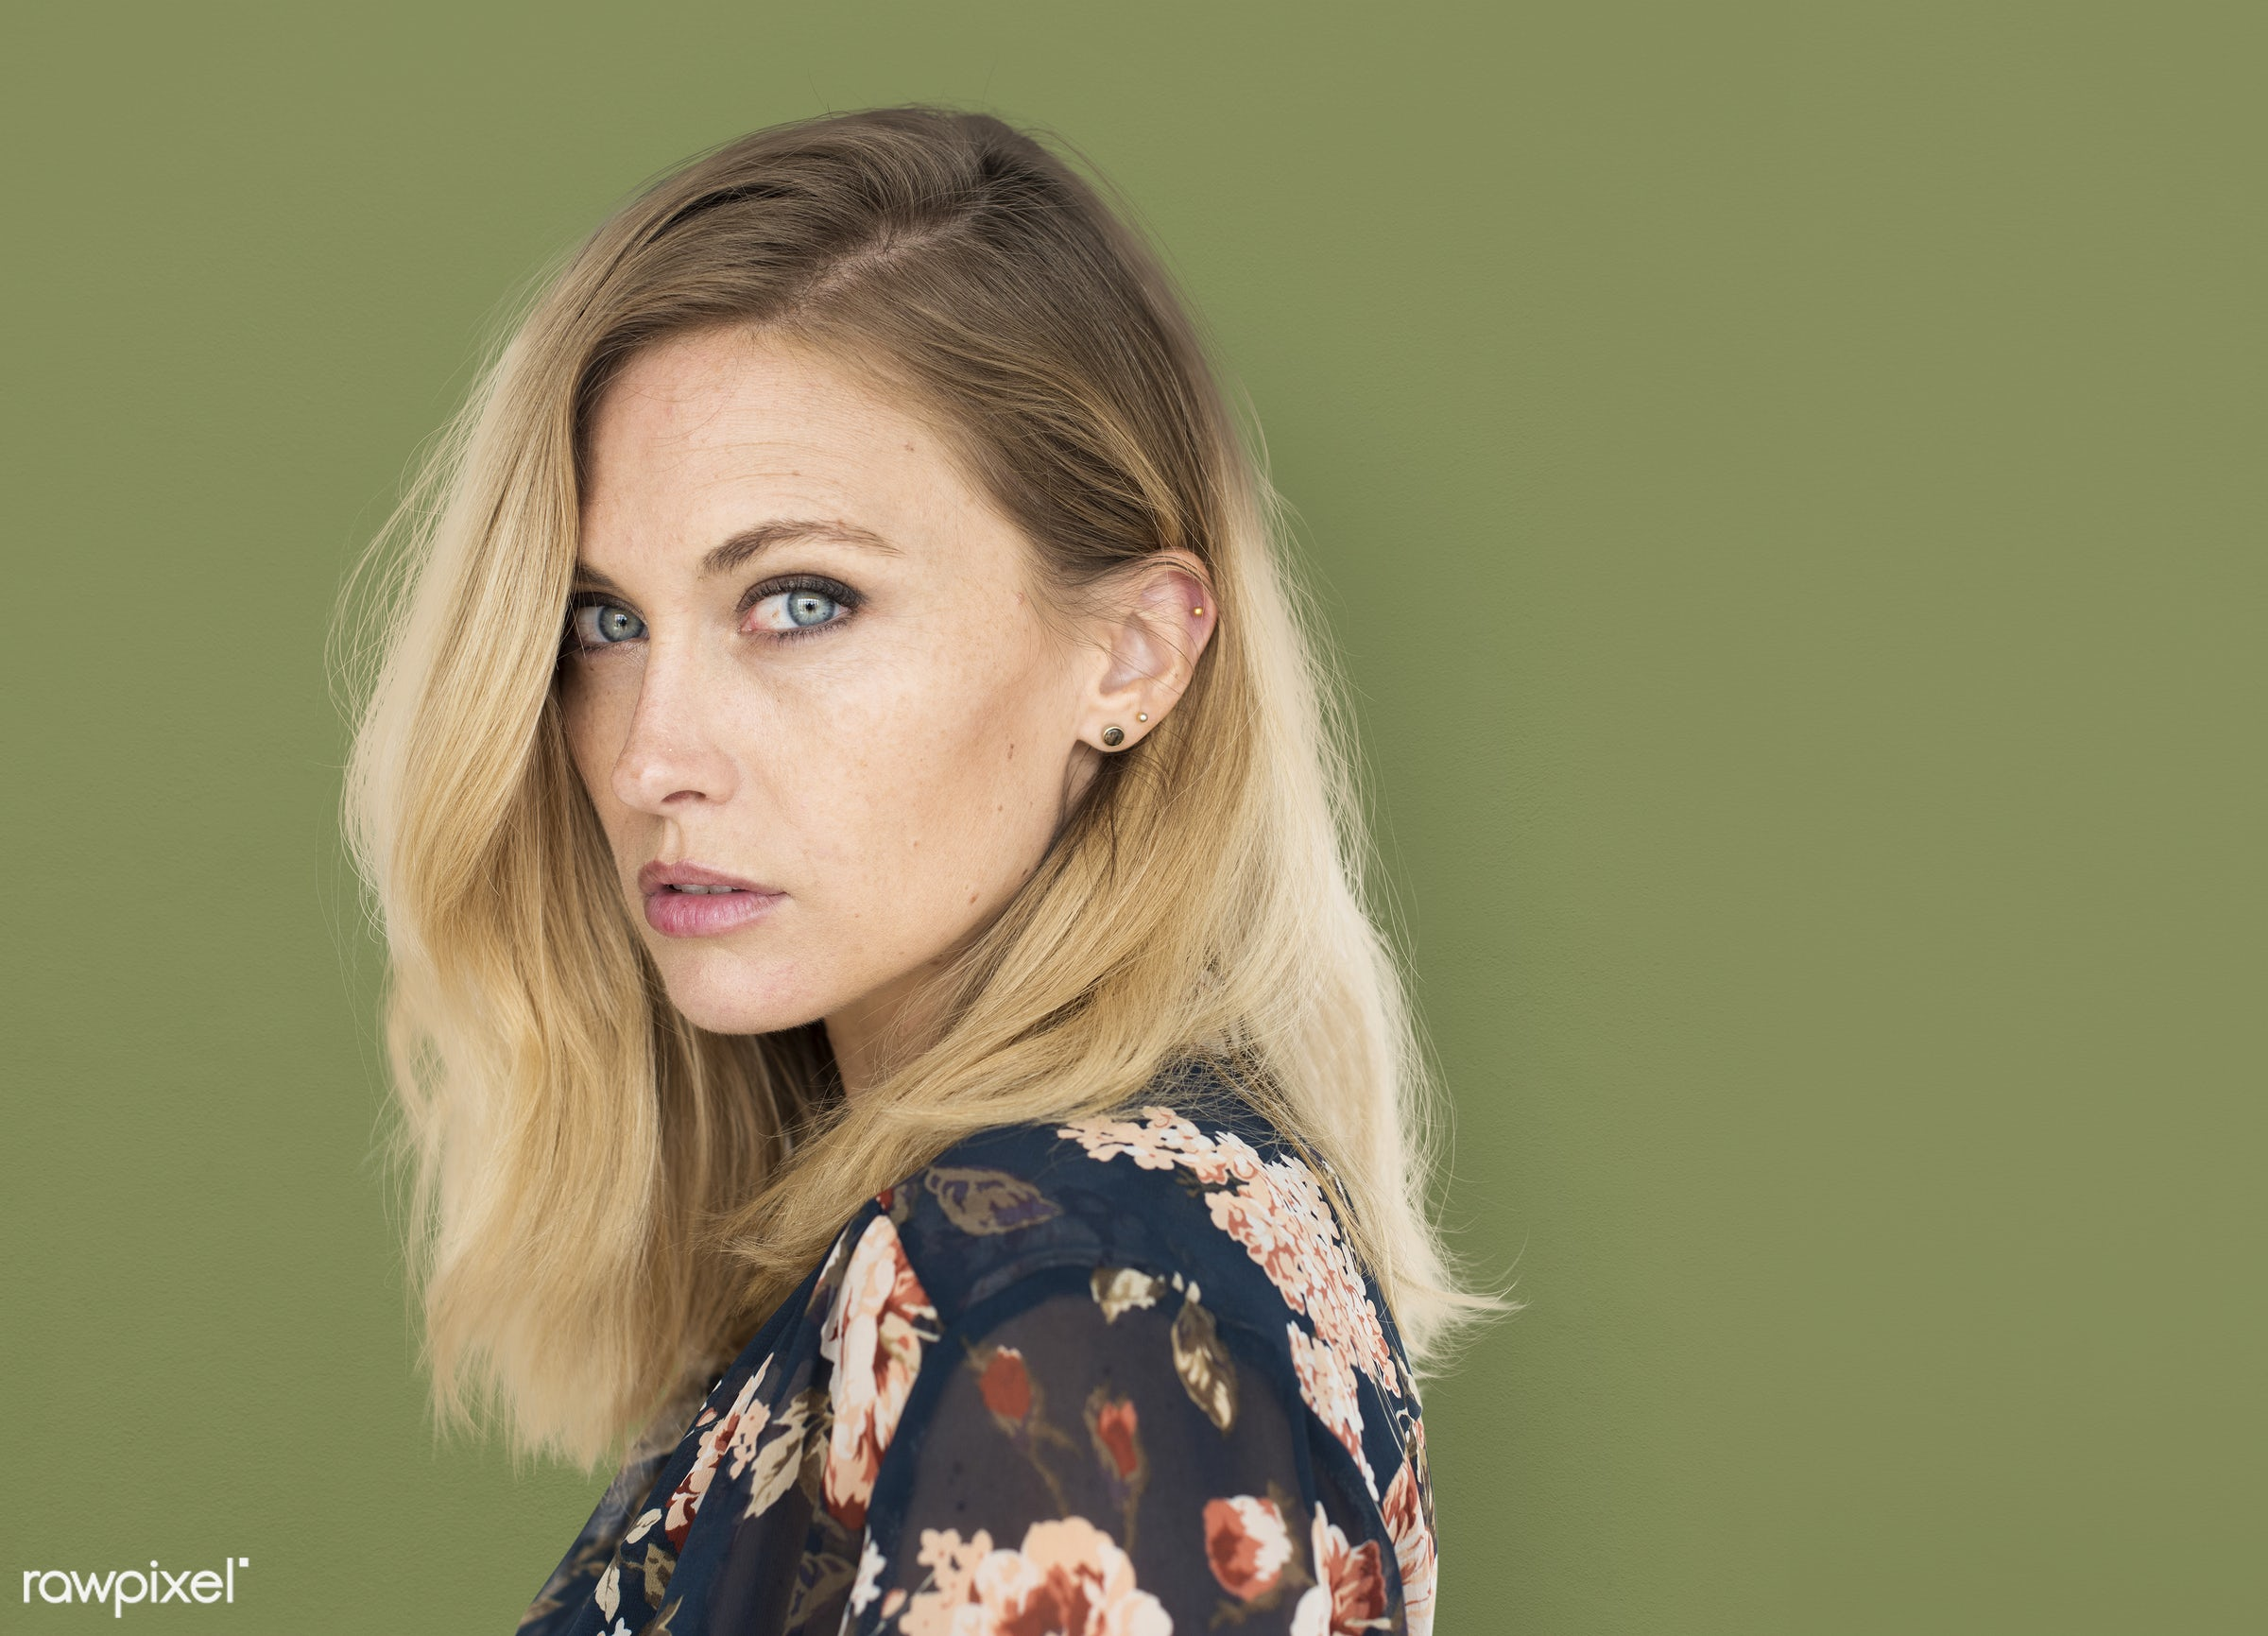 background, beauty, brunette, casual, caucasian, charming, emotion, expression, fashion, female, green, isolated, lady,...